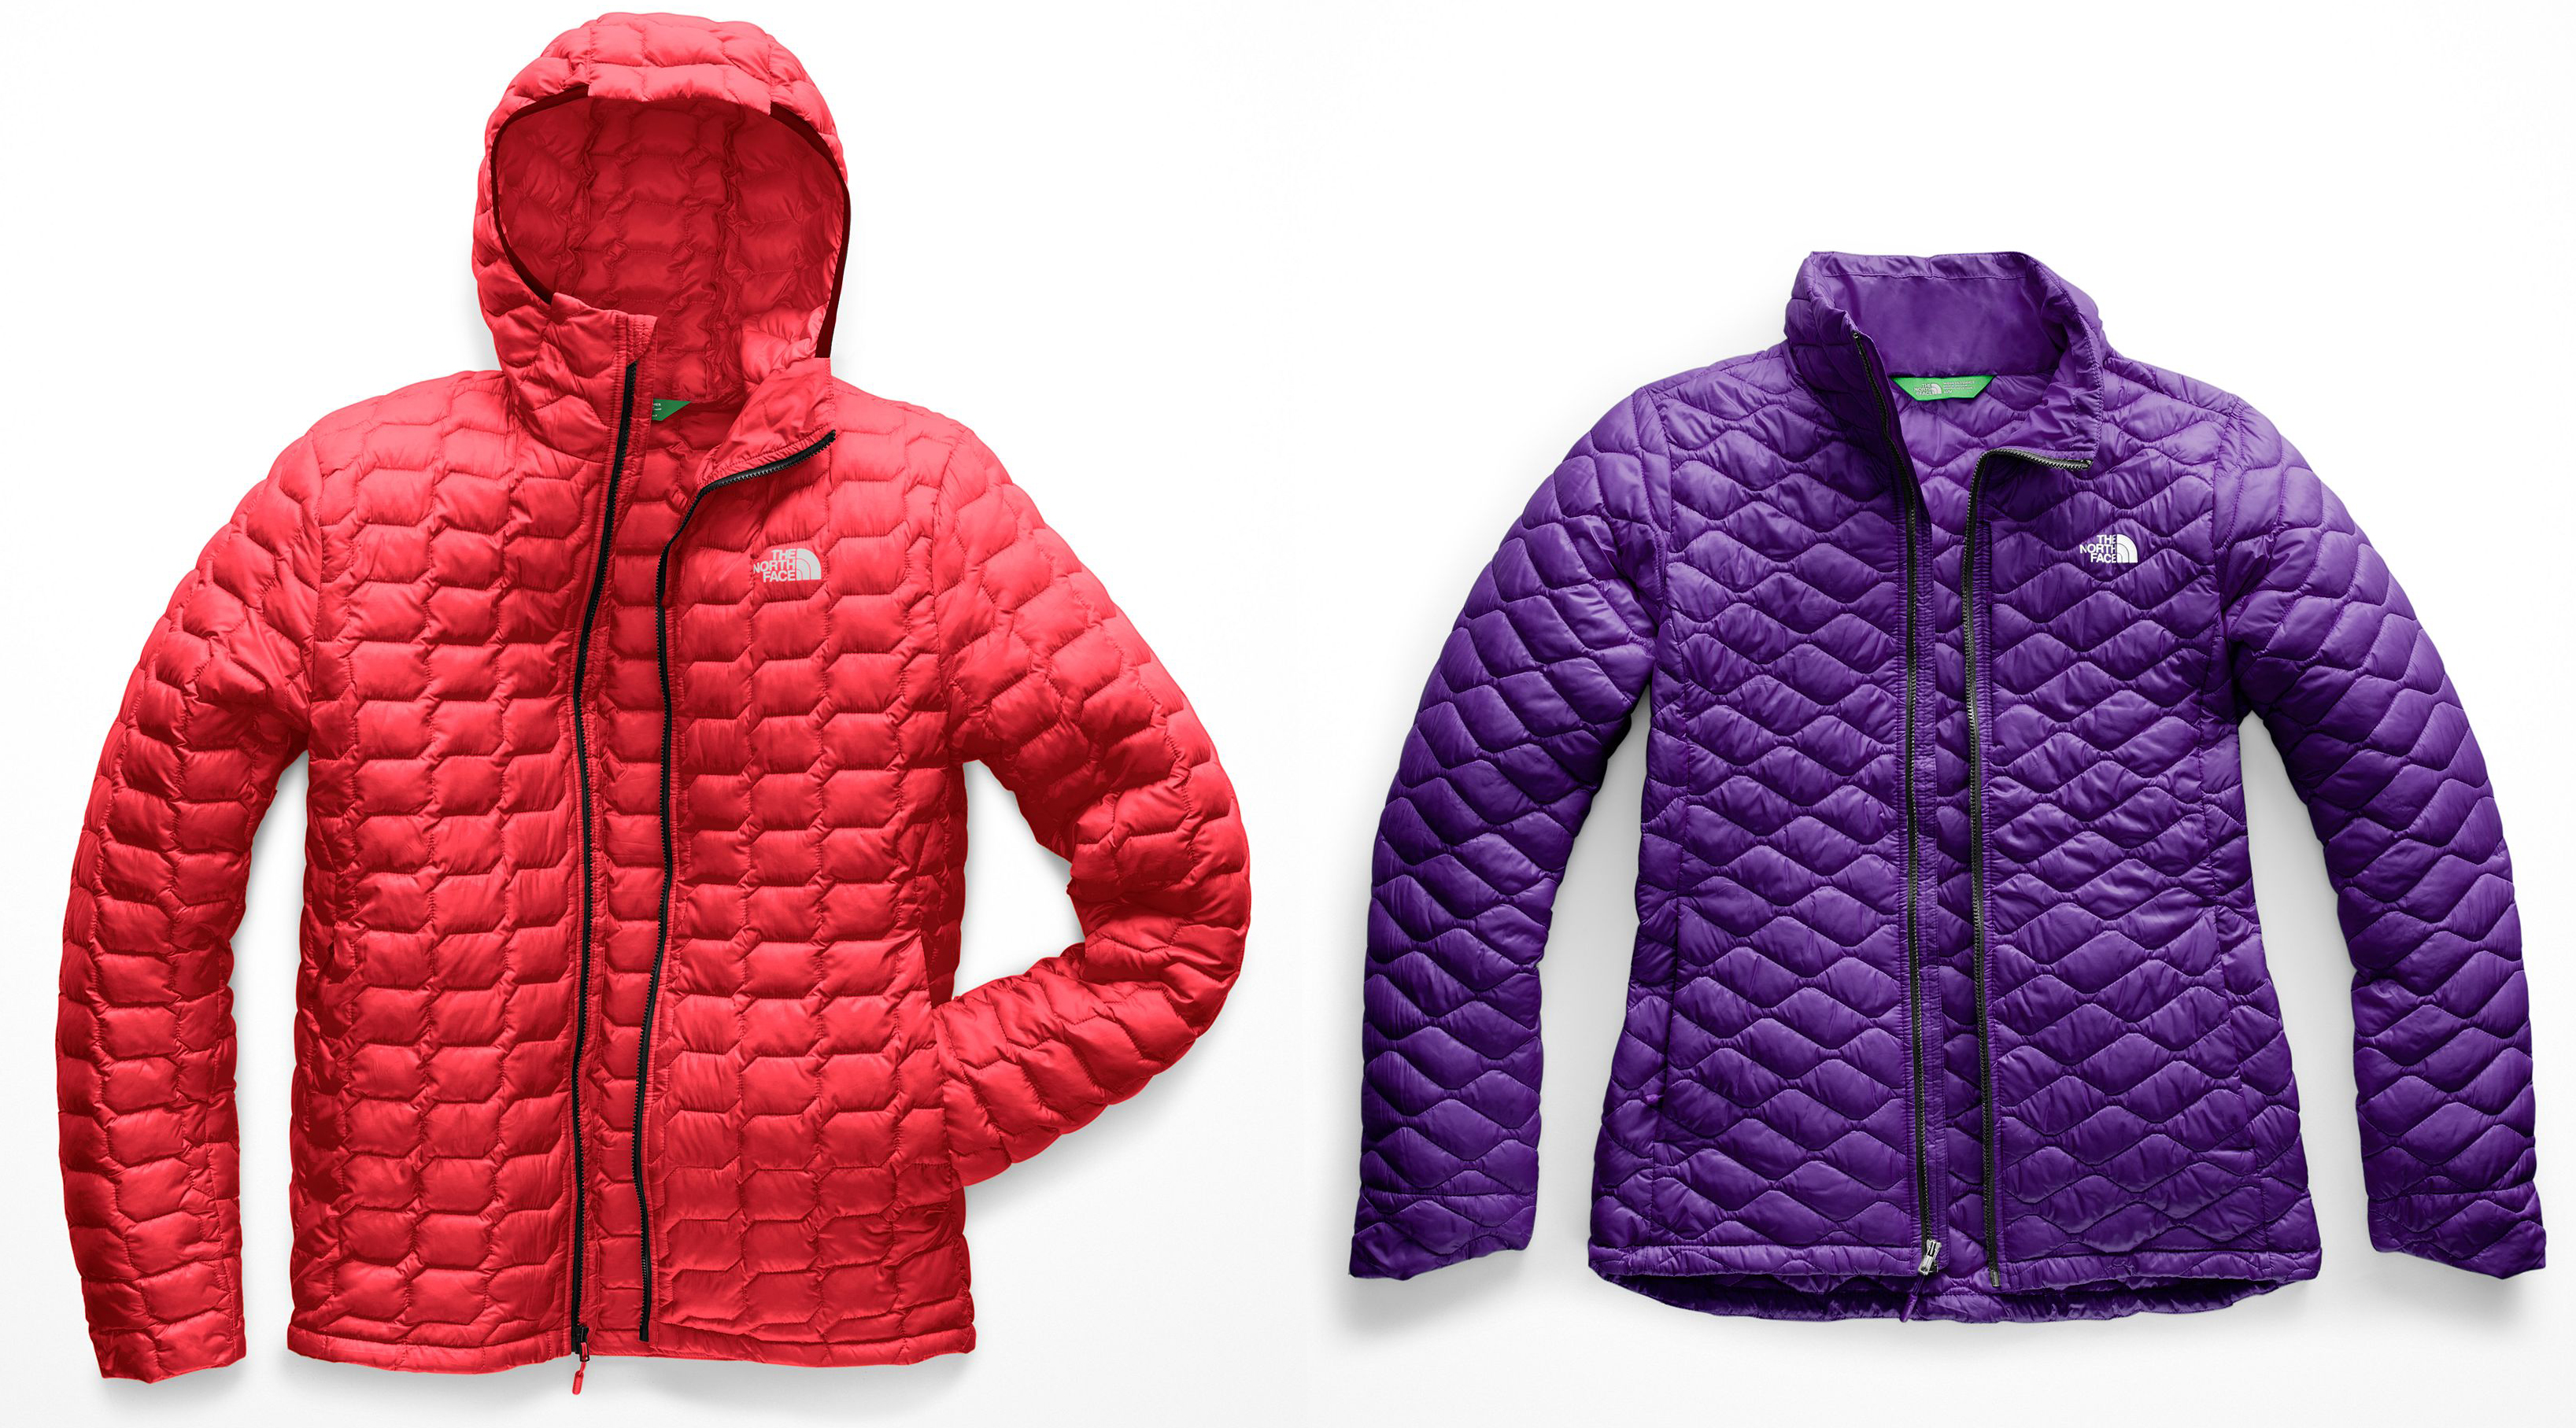 f3ee3c734 The North Face 'ThermoBall' Insulation Now Recycled | GearJunkie